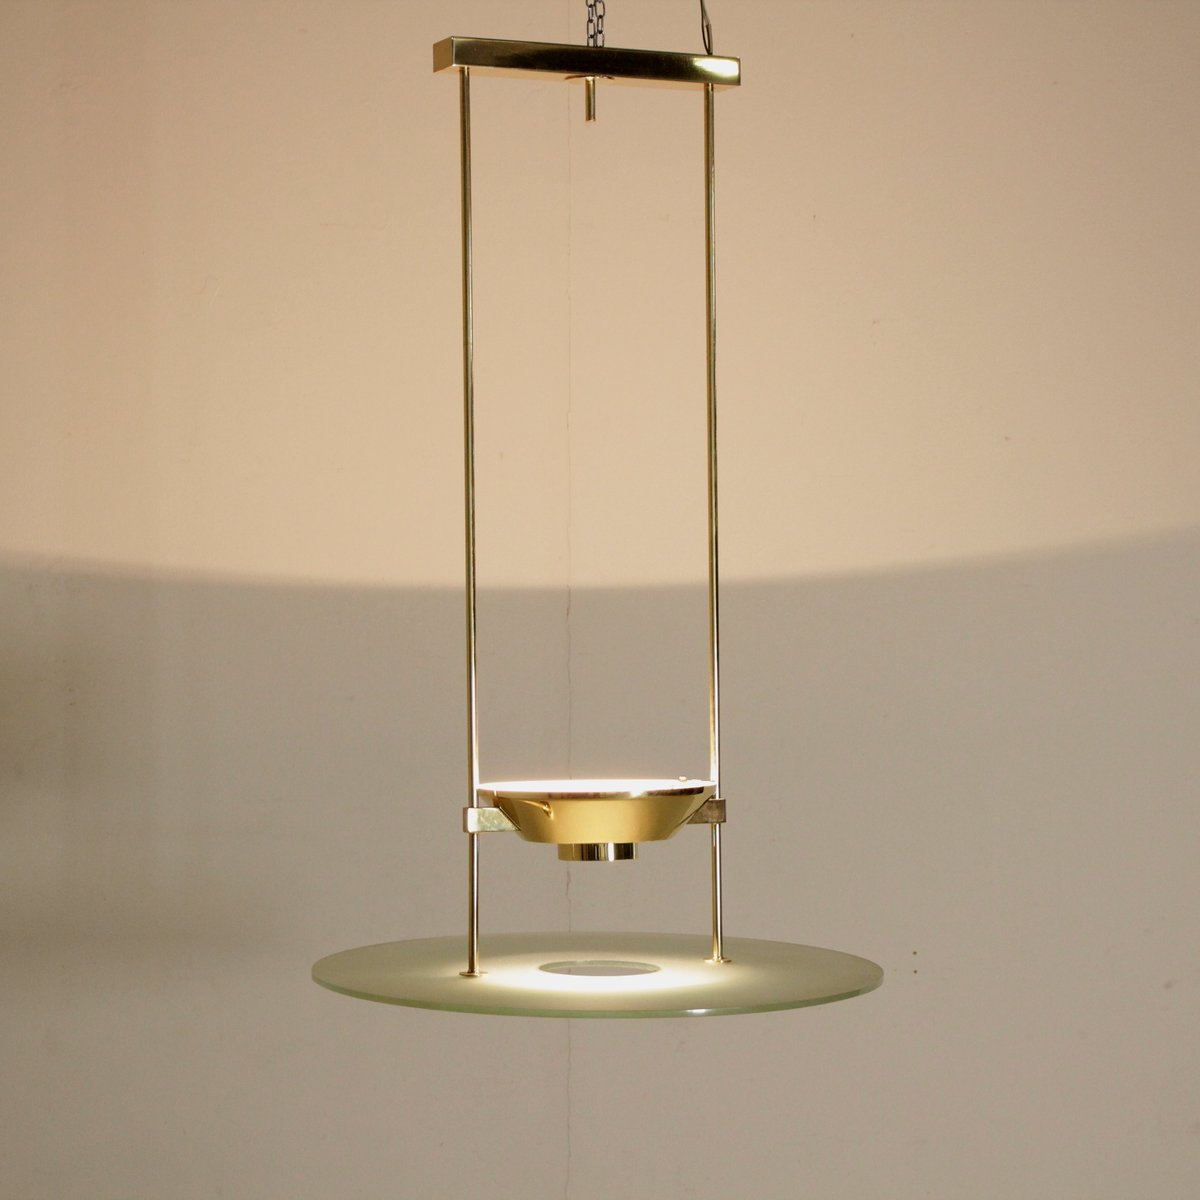 Brass & Glass Ceiling Lamp from Lumi, 1980s for sale at Pamono